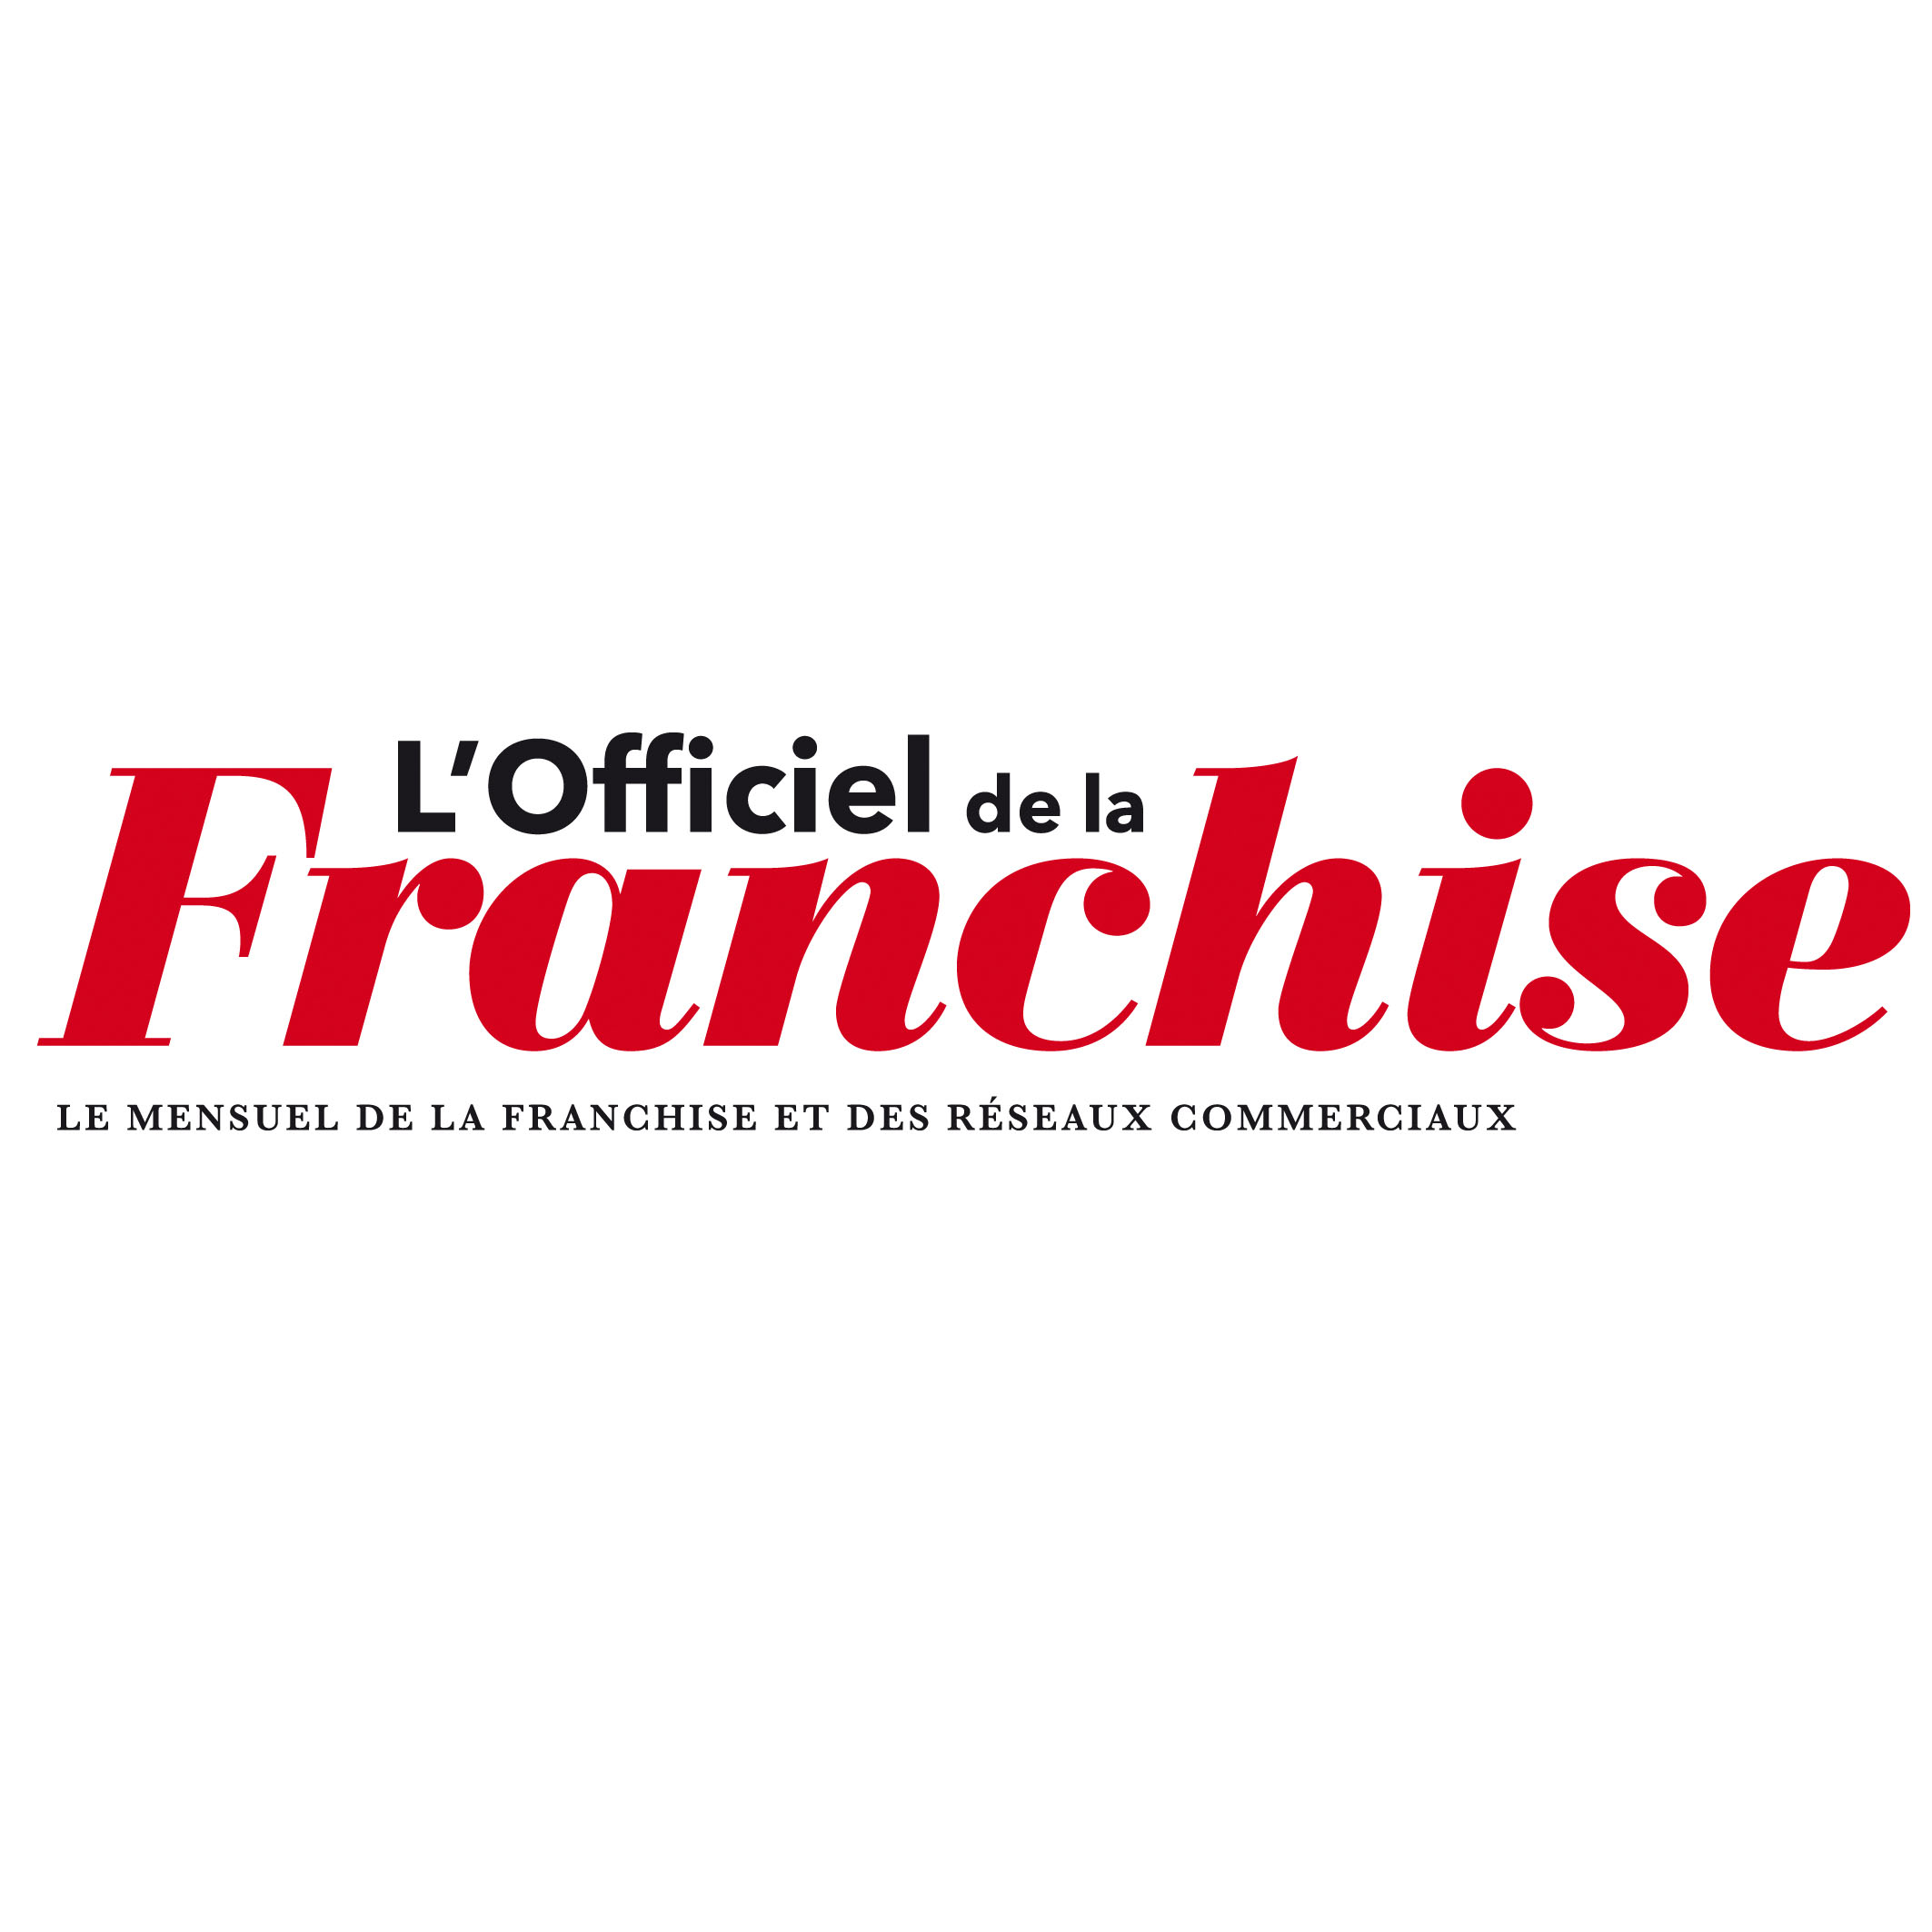 Evolution des contrats de franchise (L'Officiel de la franchise, avril 2011)